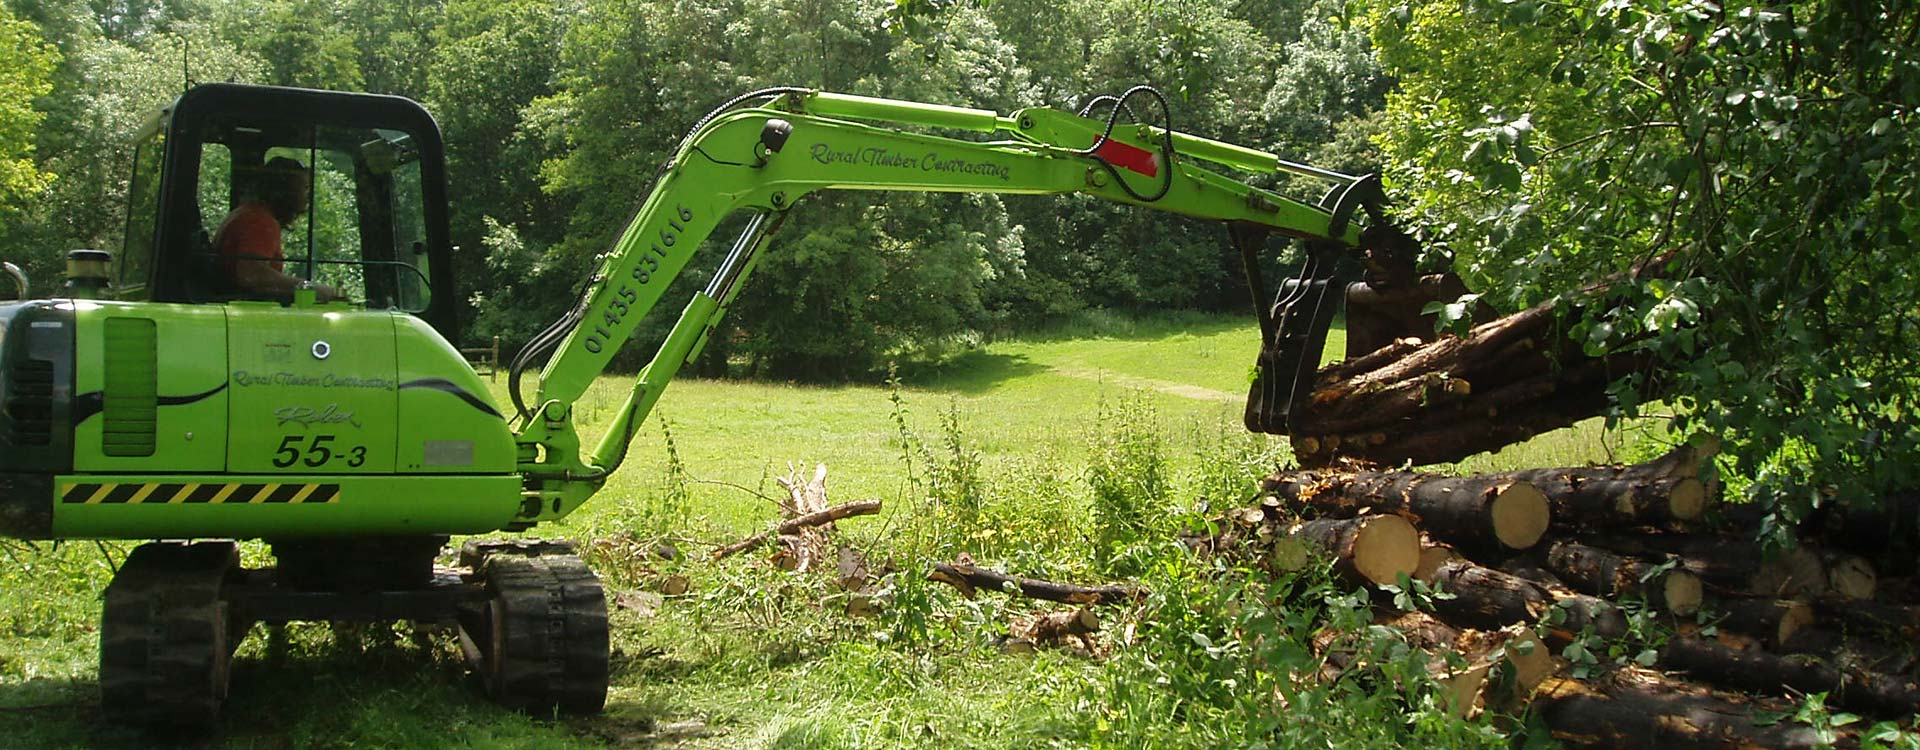 ground-works-rural-timber-02